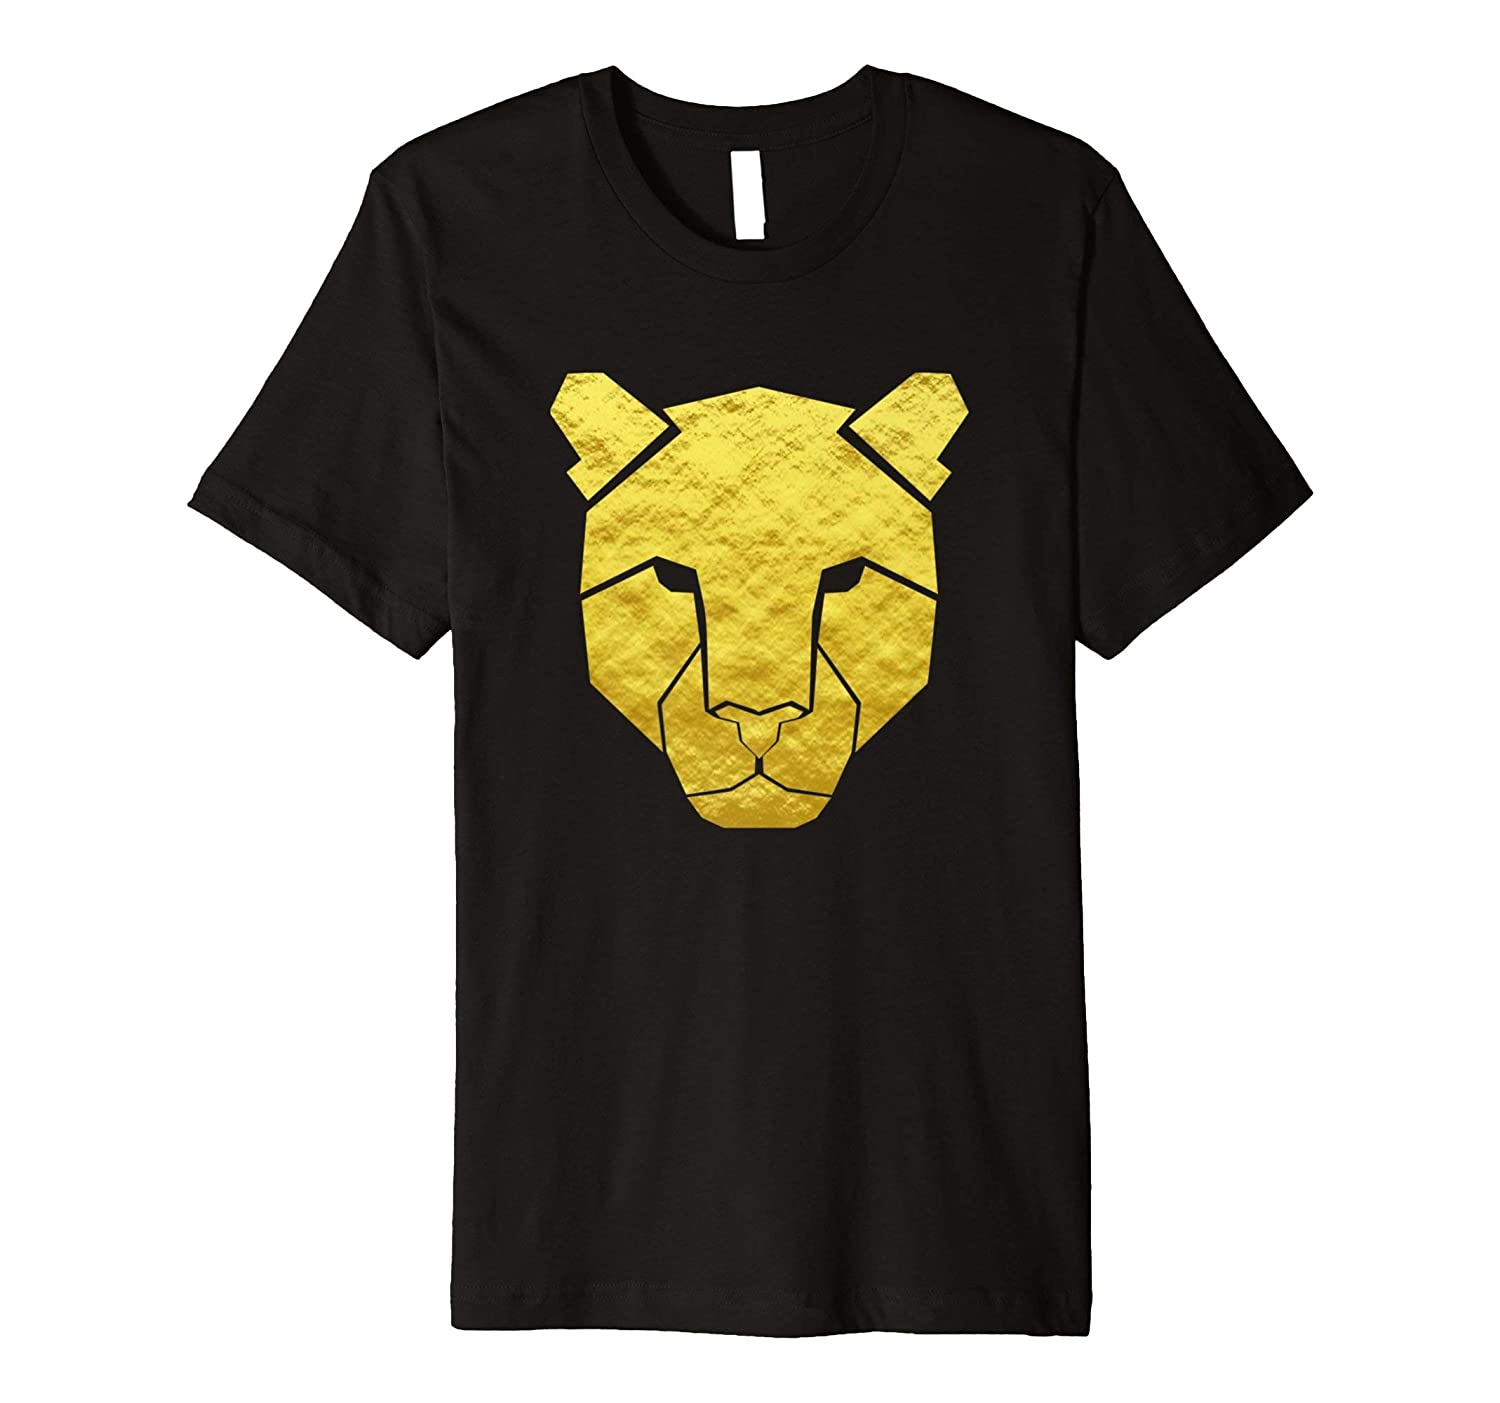 buy online cc72f 9fff6 Amazon.com  Panther T-Shirt African Black Pride Gold Graphic Tee Gift   Clothing